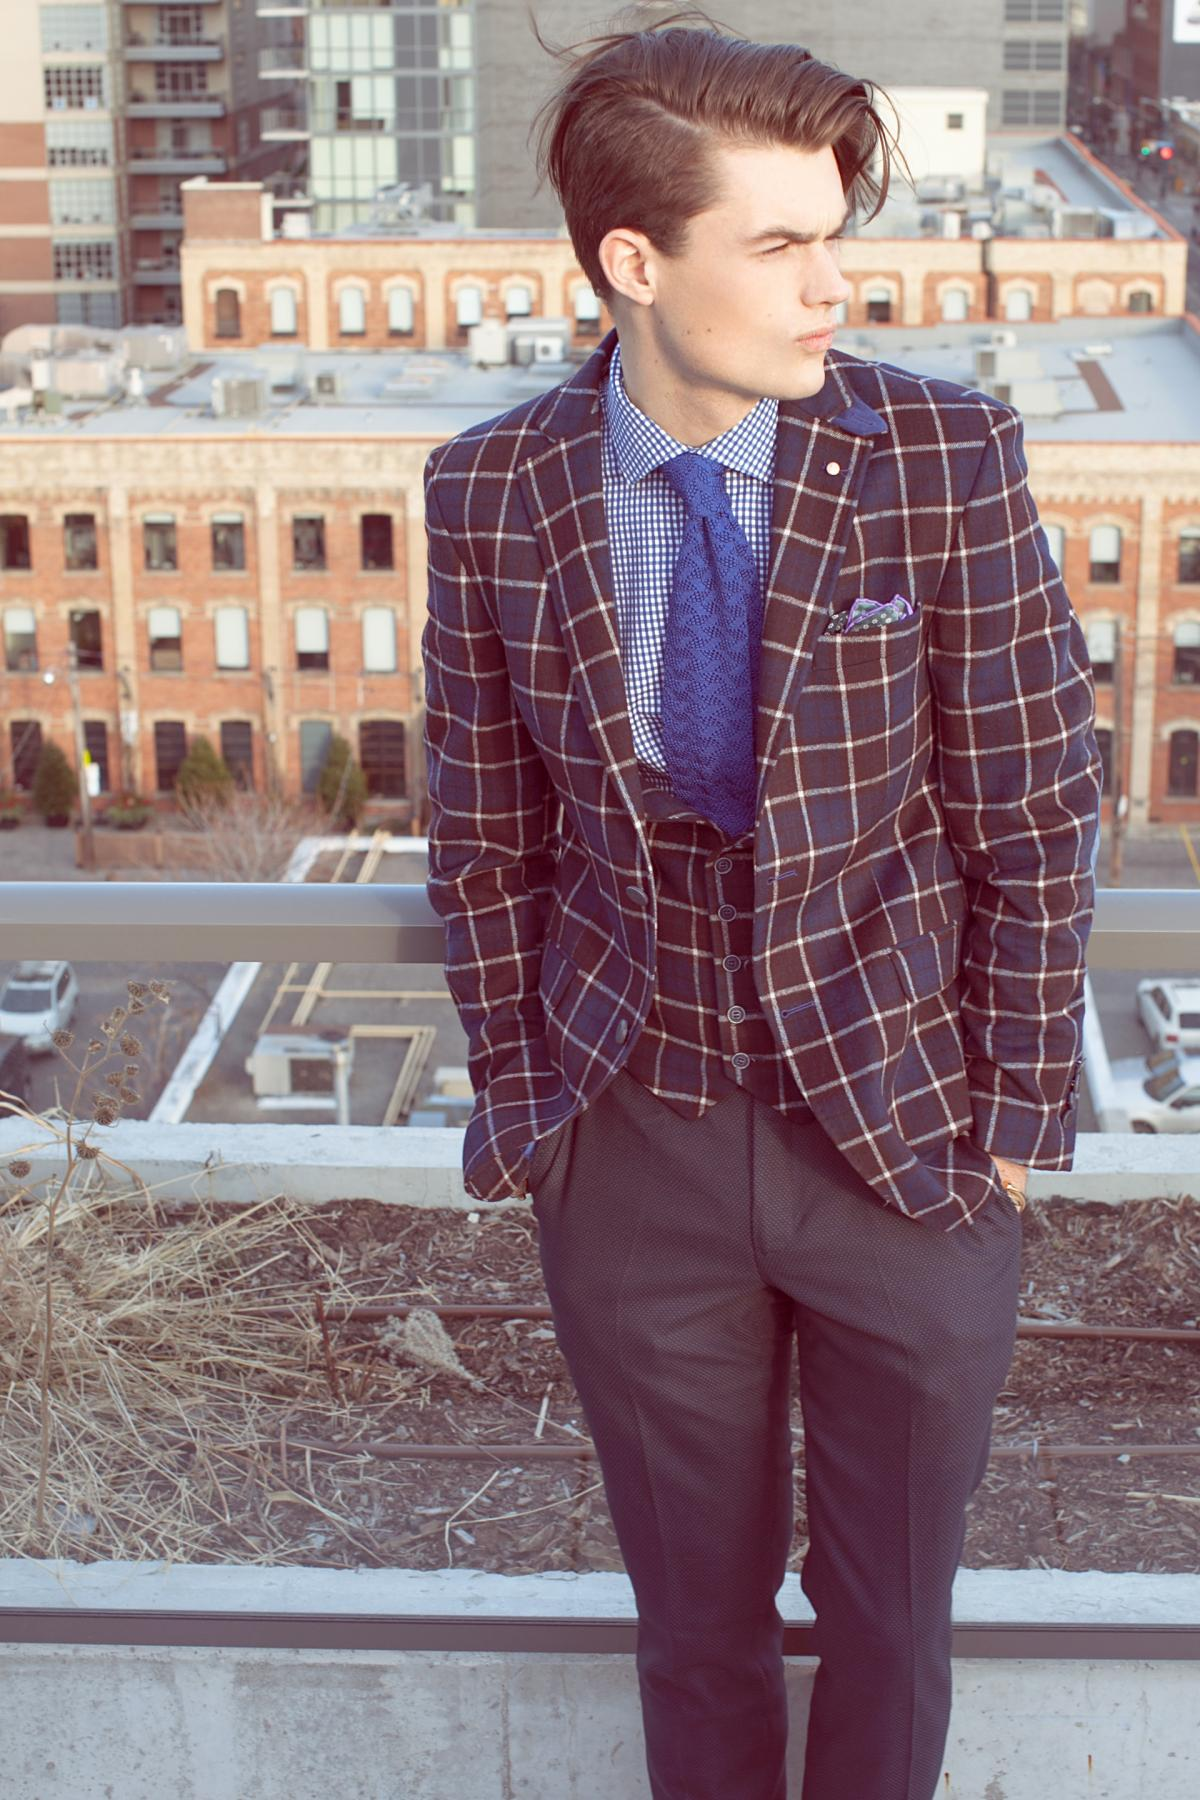 Young man looking awesome in squared jacket with blue tie